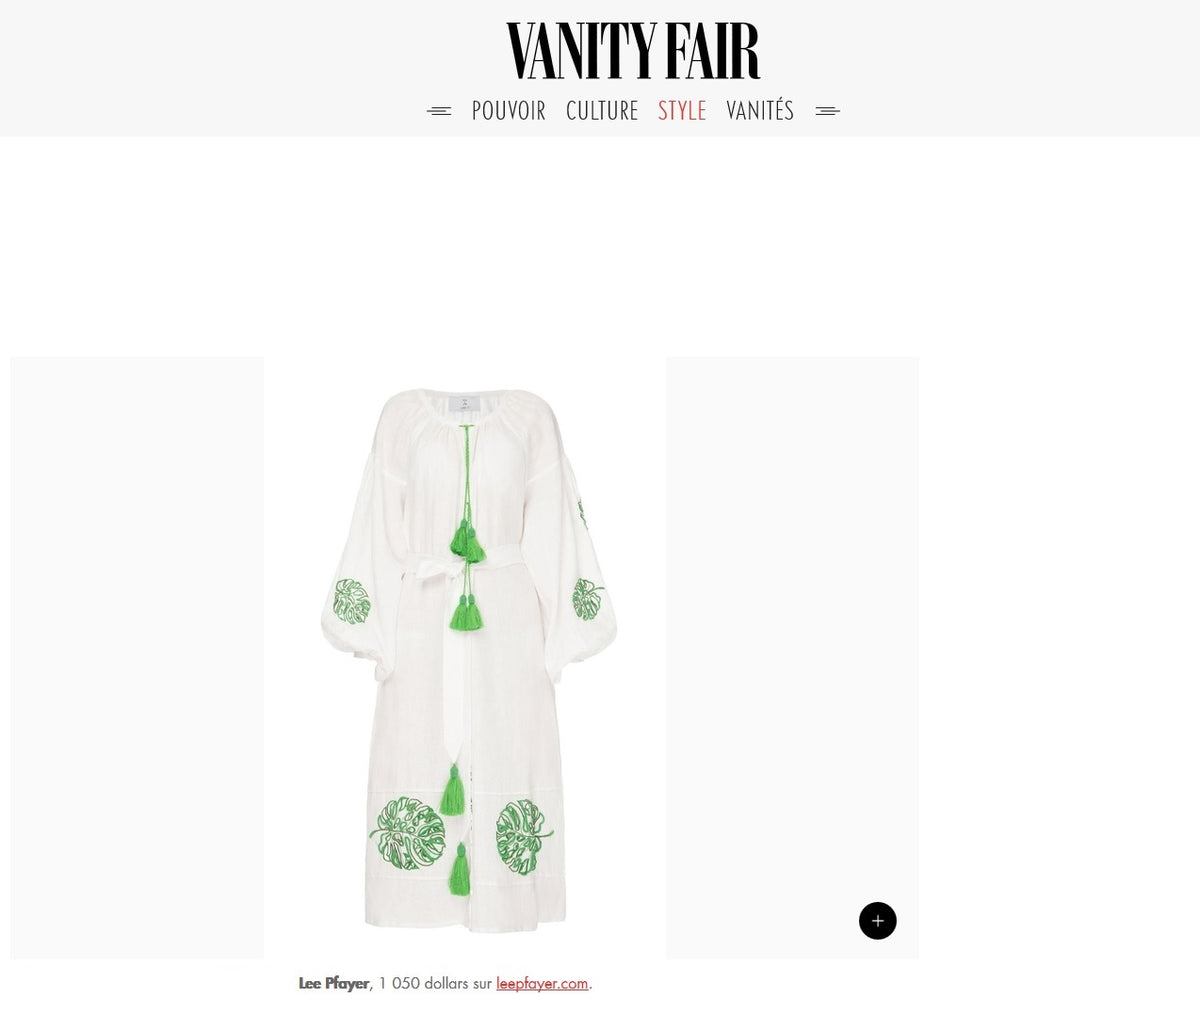 Lee Pfayfer Dress is featured in Vanity Fair.FR